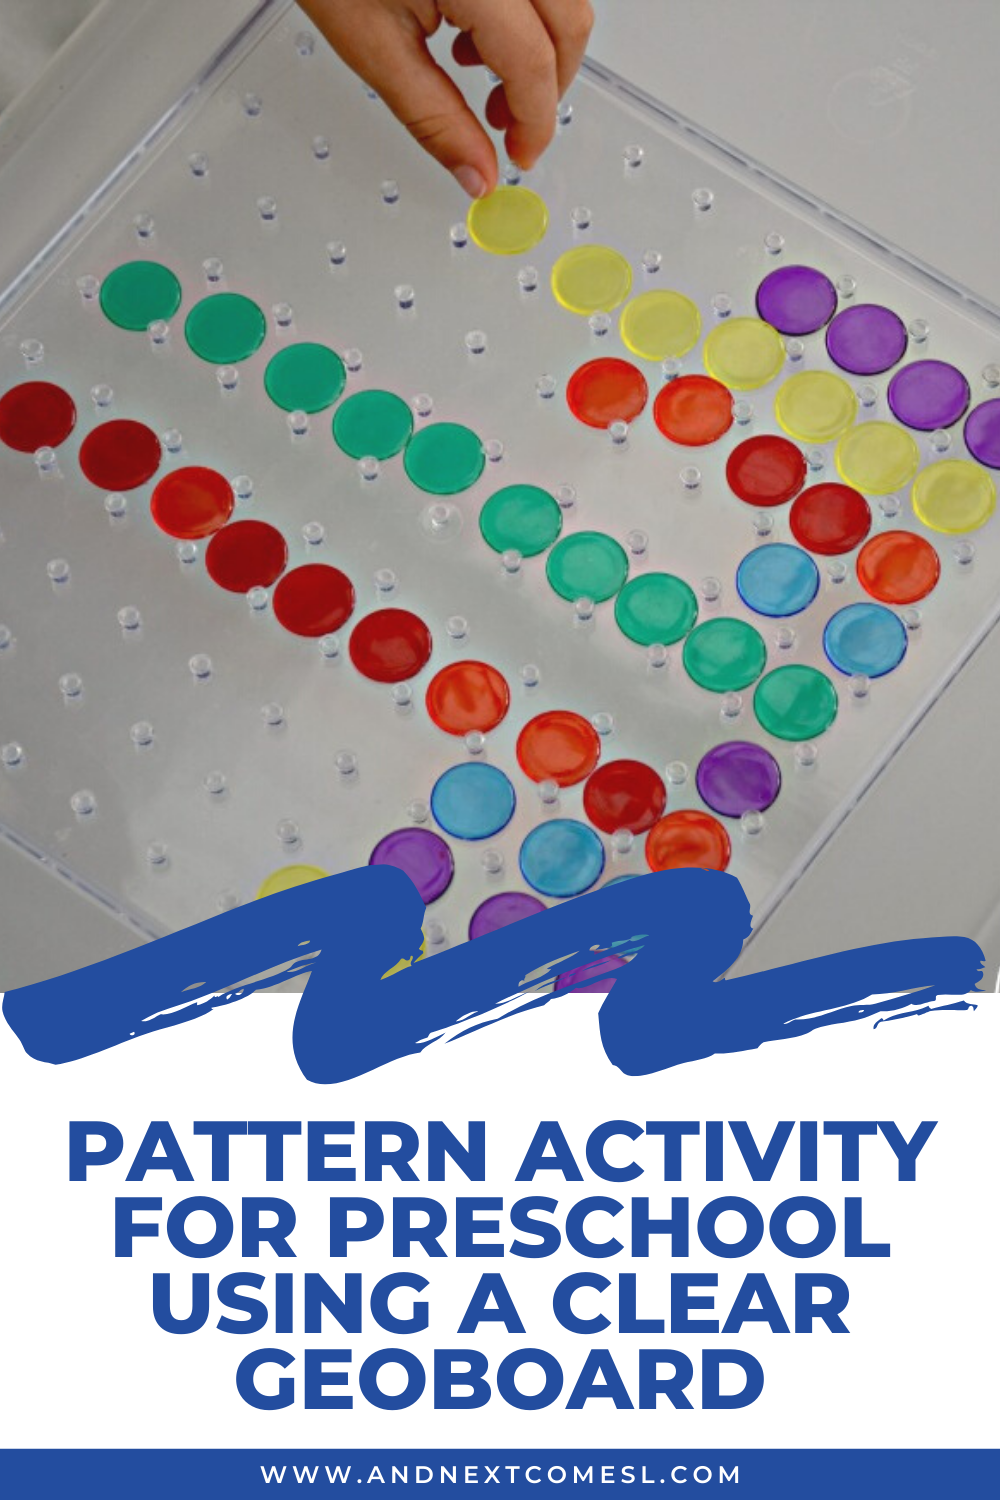 Patterning activity for preschool and kindergarten kids using a clear geoboard - great on the light table too!